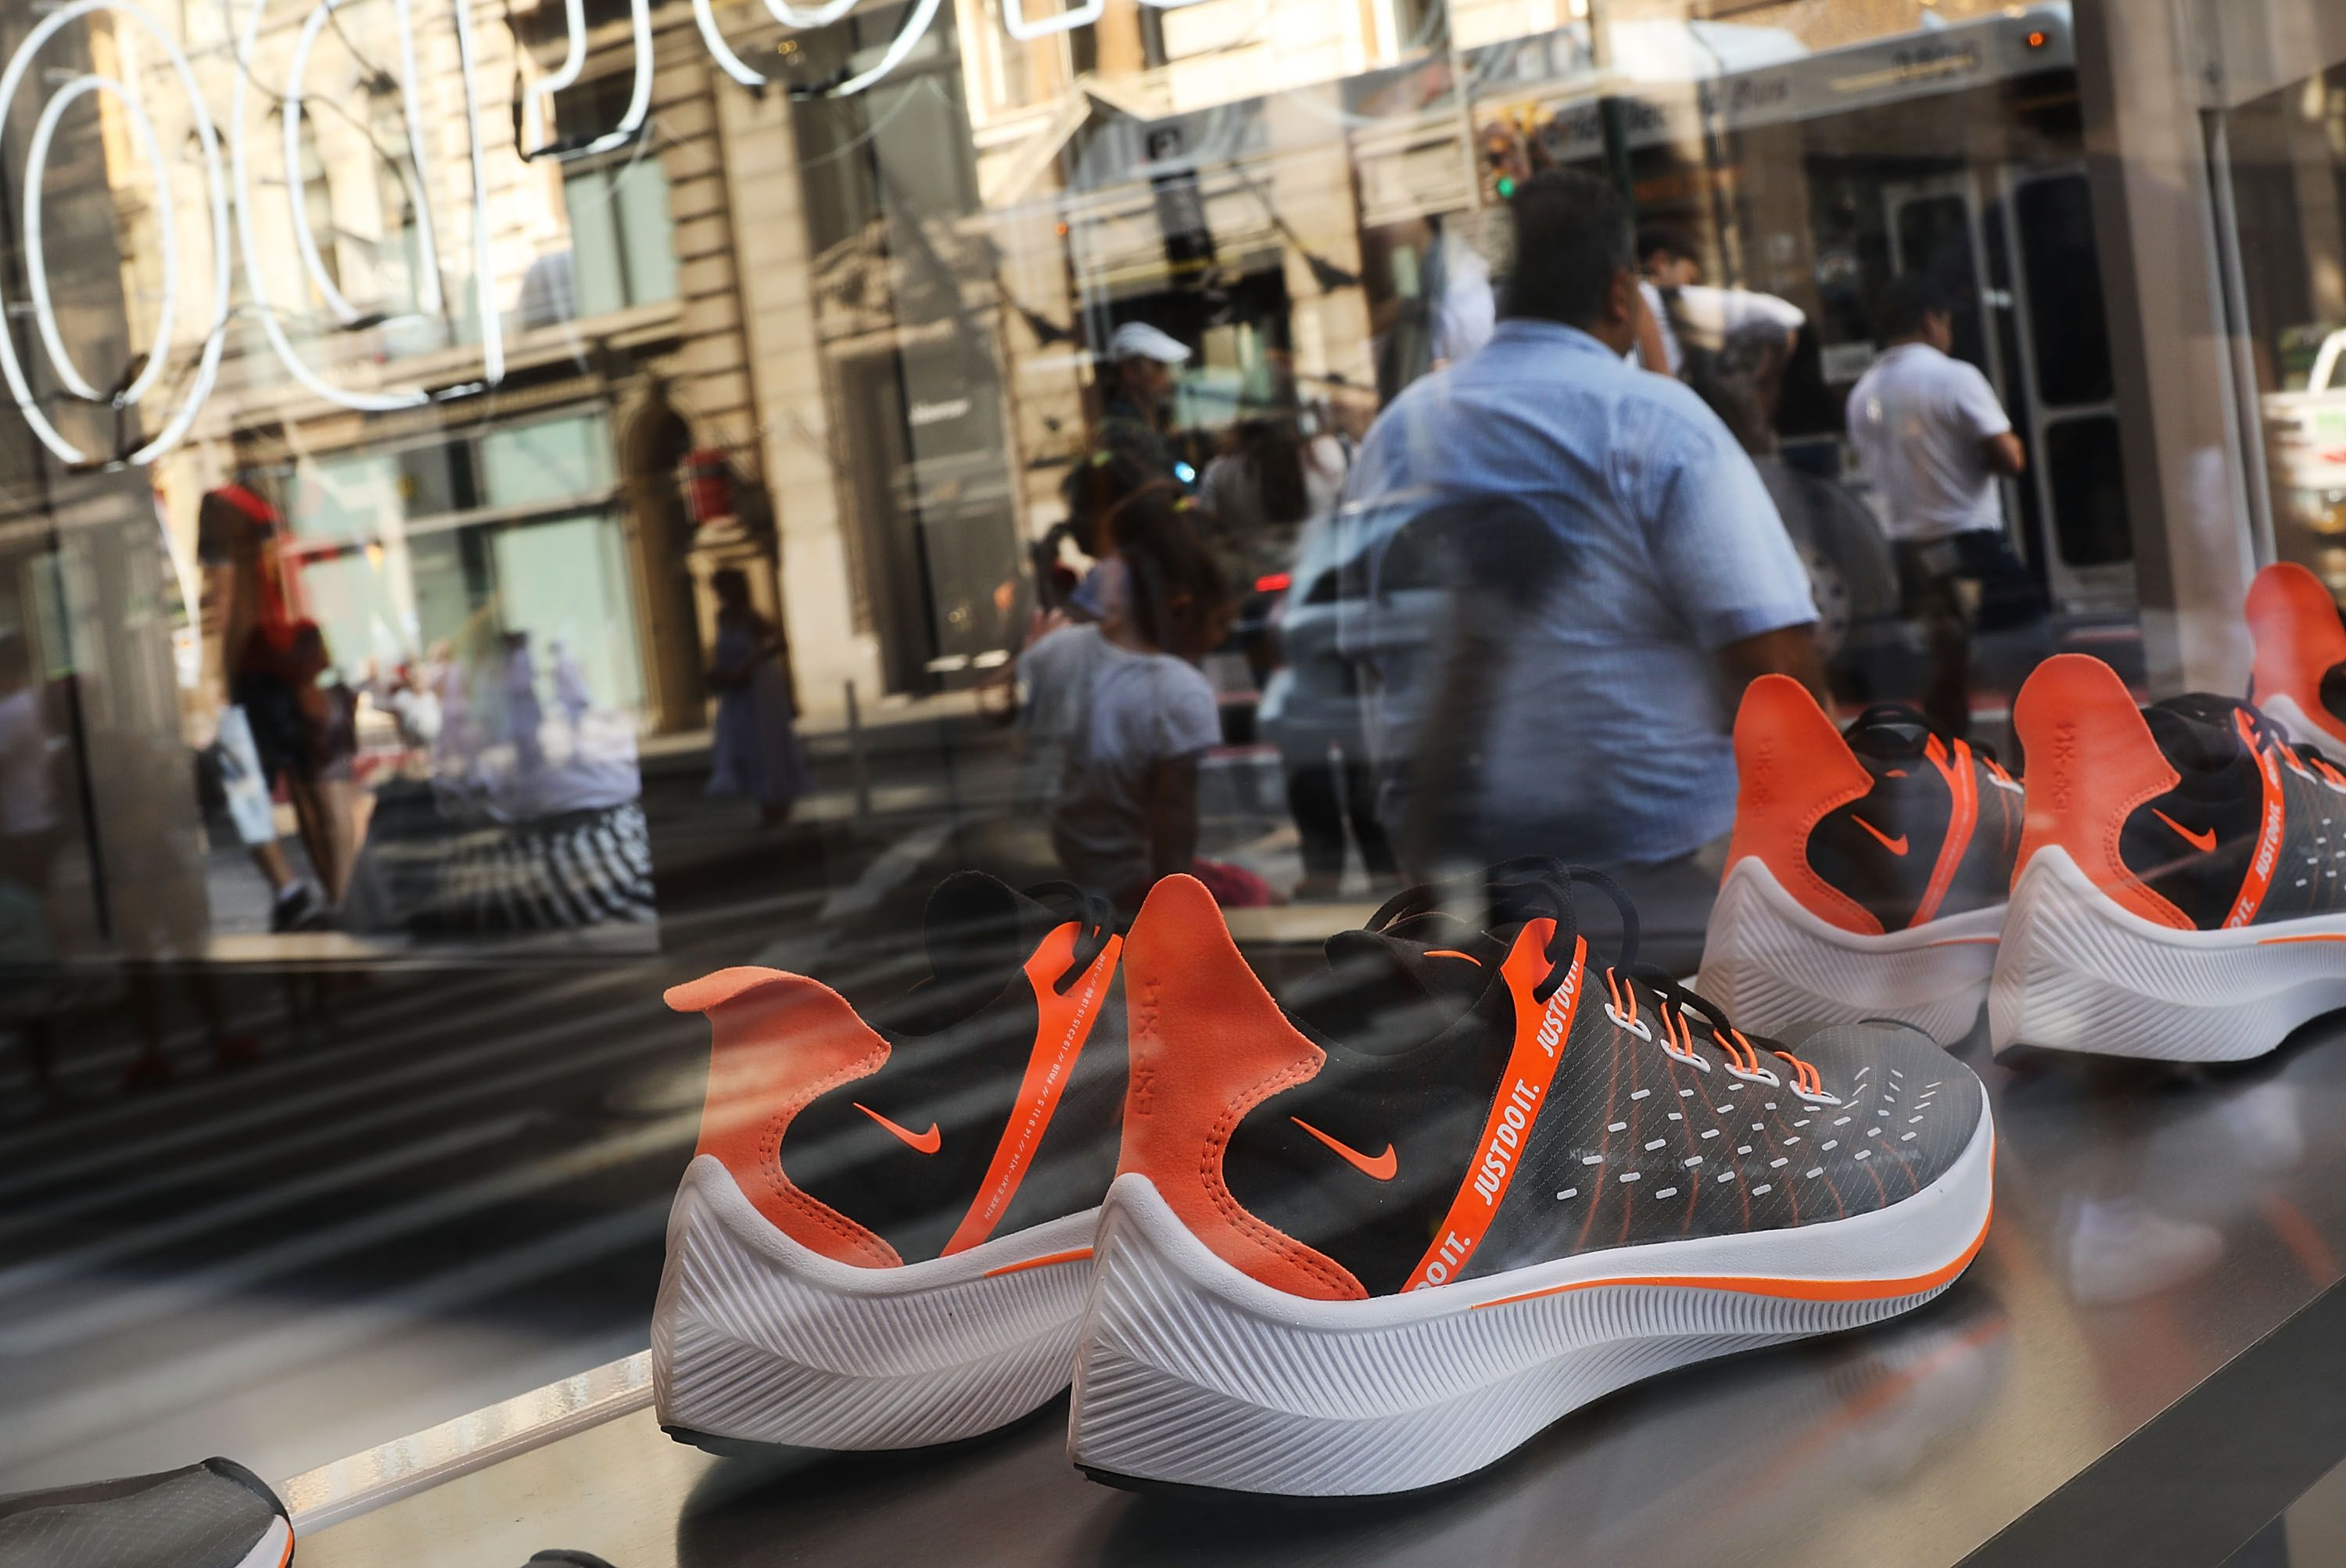 shoe company mission statement examples